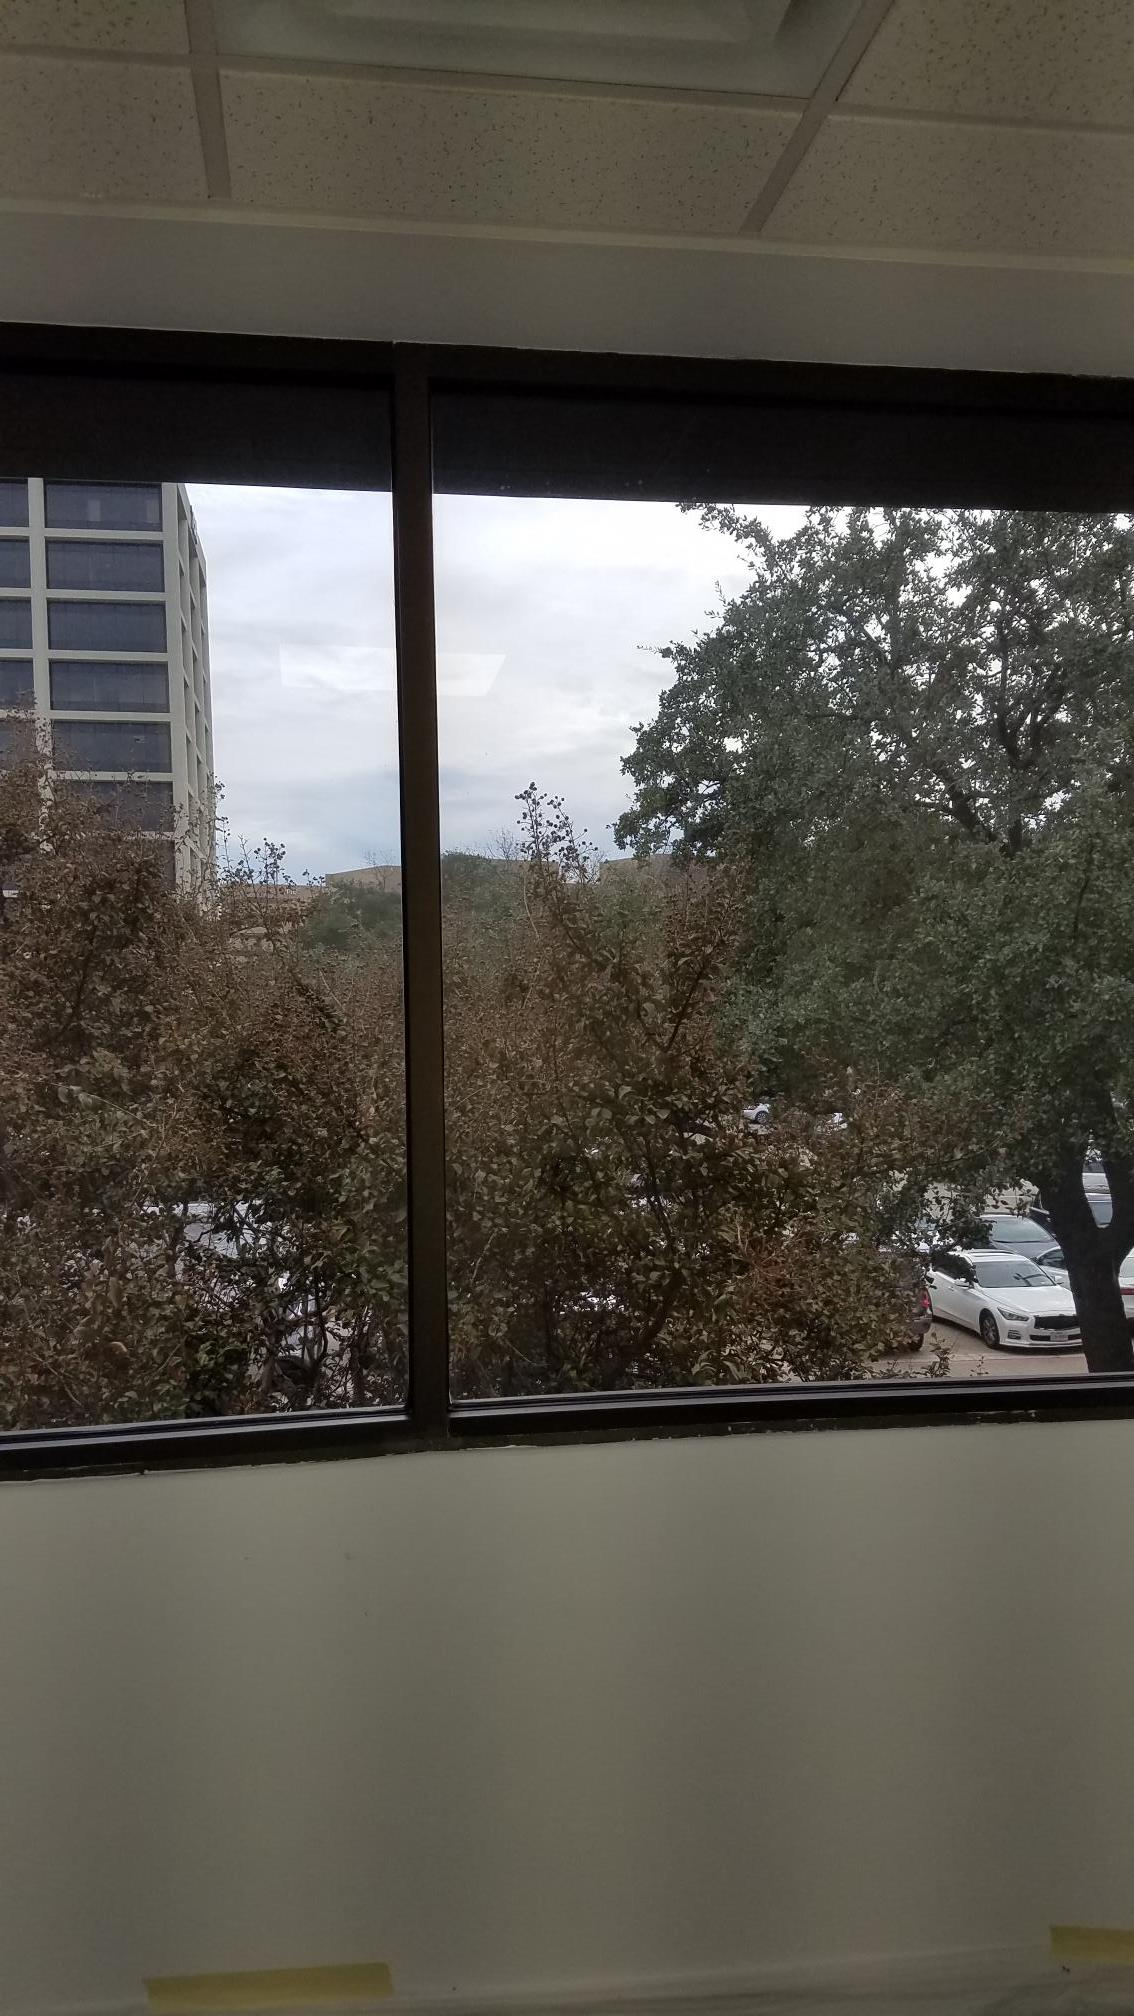 Medical Office Suite in Dallas - Suite 225A - Image 22 of 22